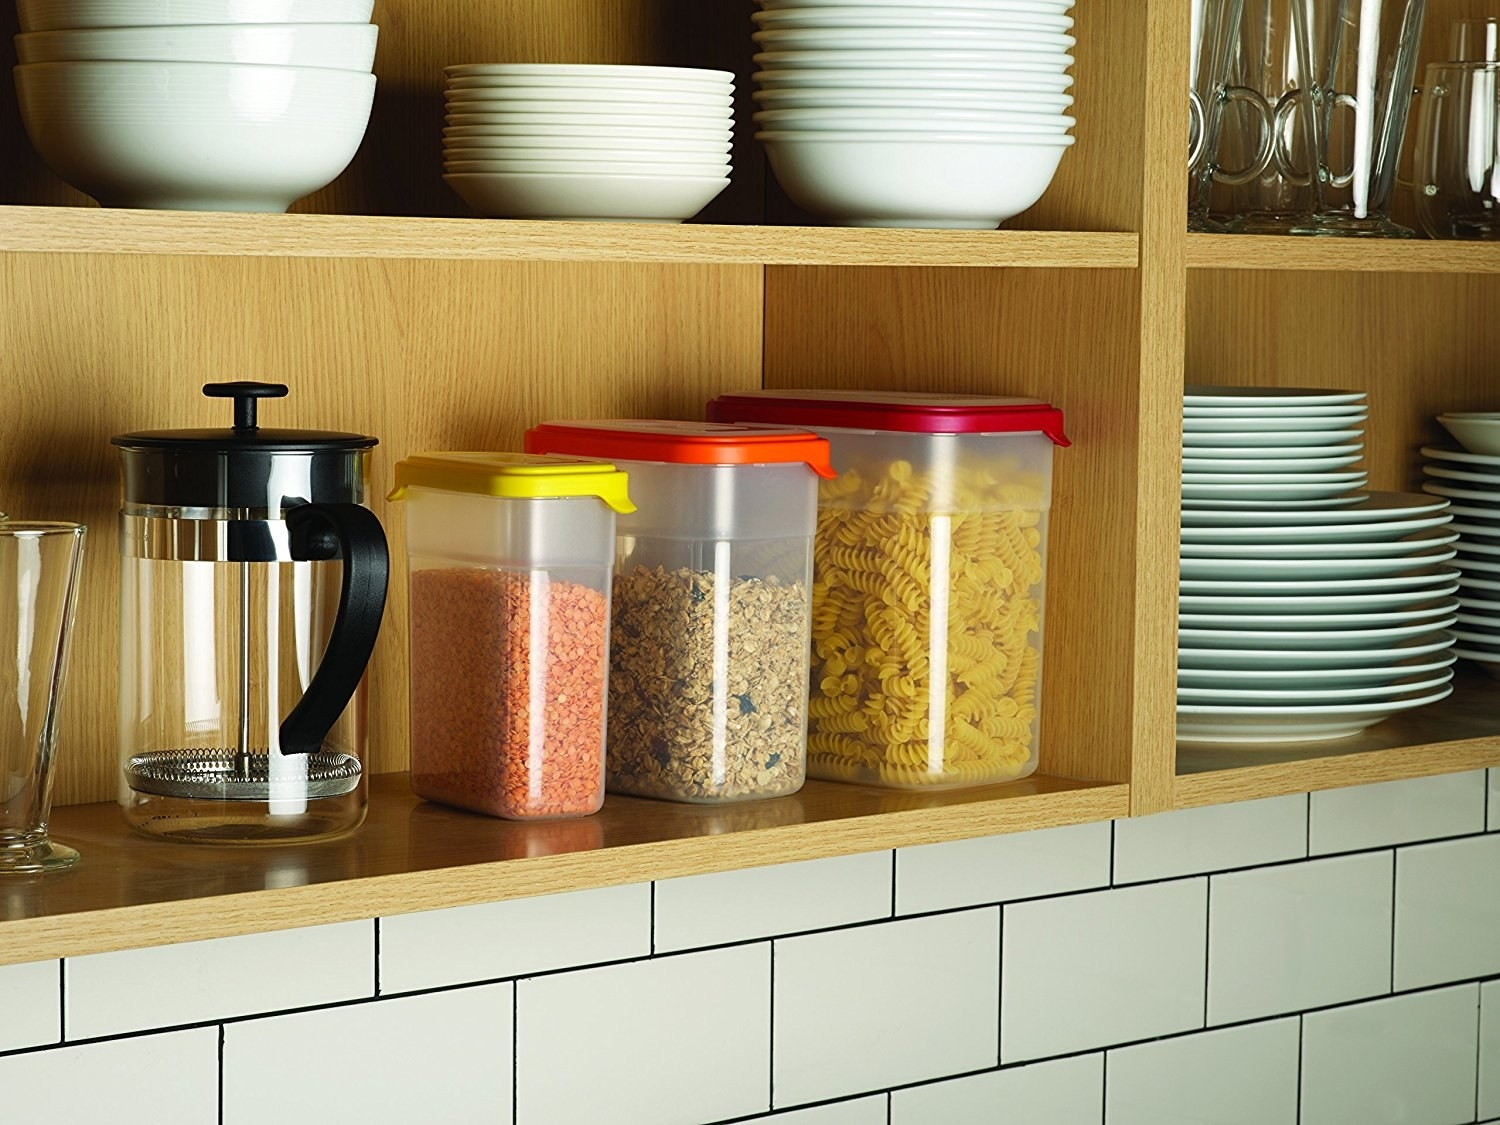 26 of the best kitchen storage and organization products on amazon rh buzzfeed com